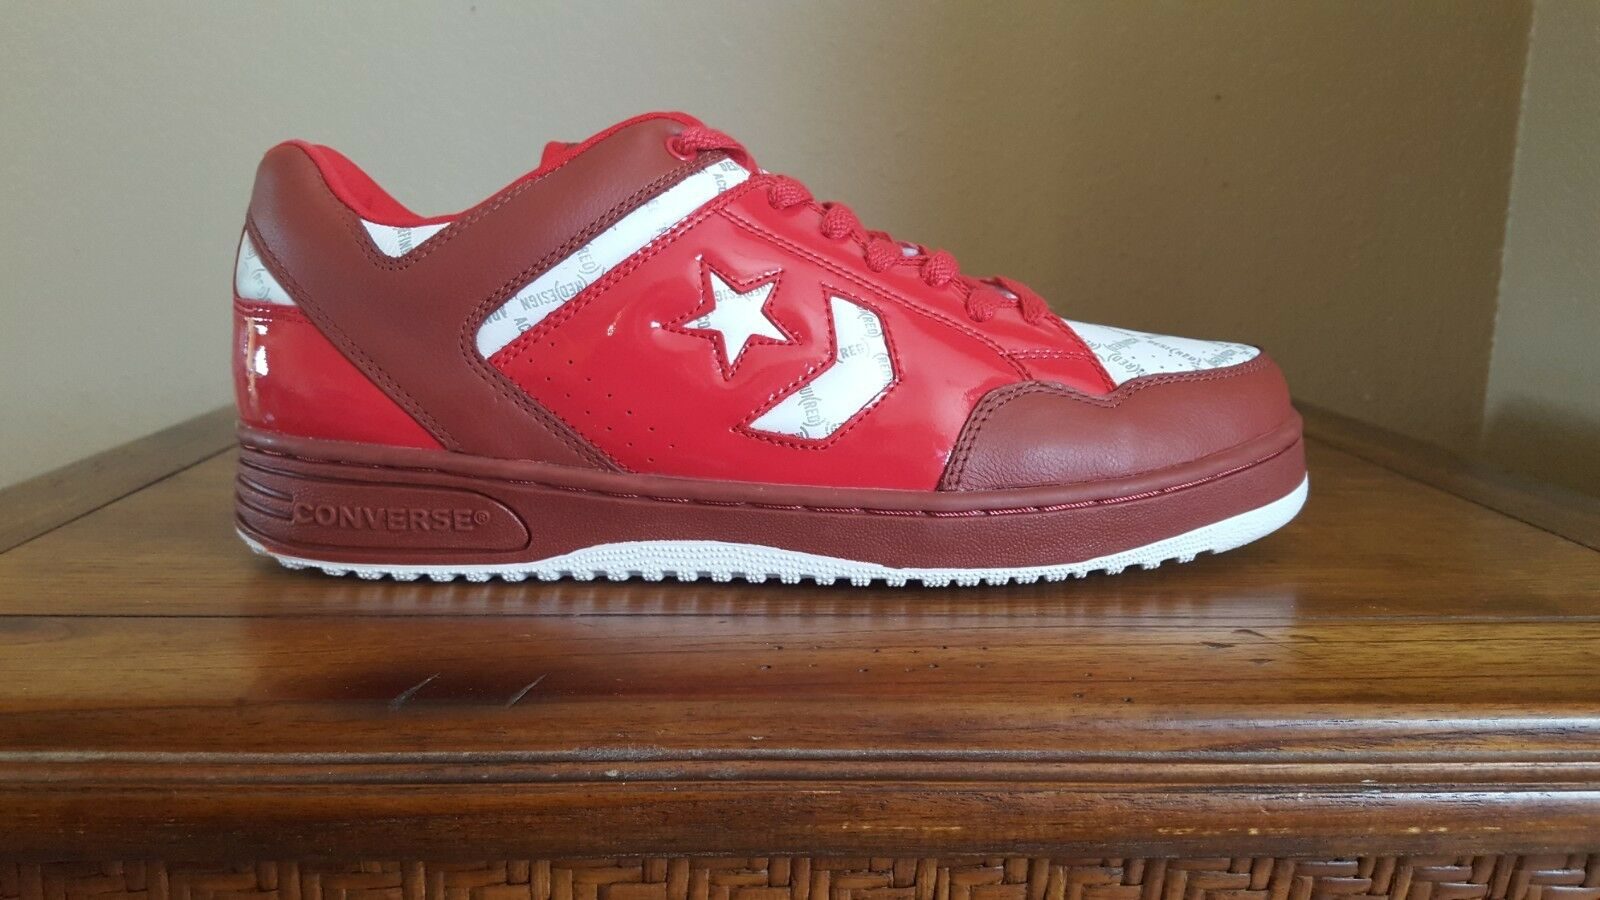 Converse Basketball Weapon Red/White Low Basketball Converse Shoes Size 12 6b8632